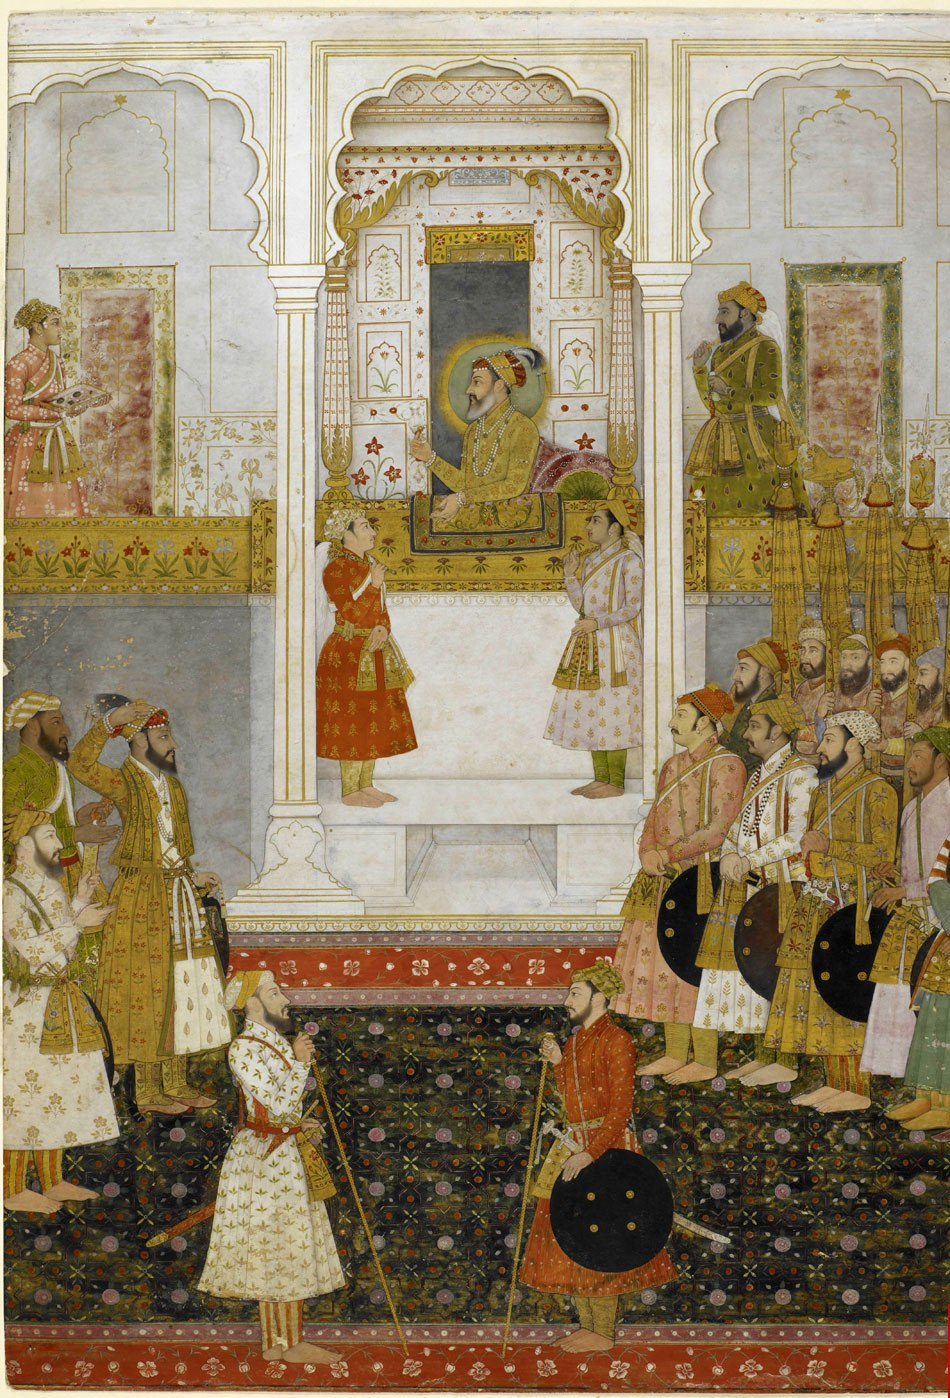 Mughal India Art Culture and Empire British Library